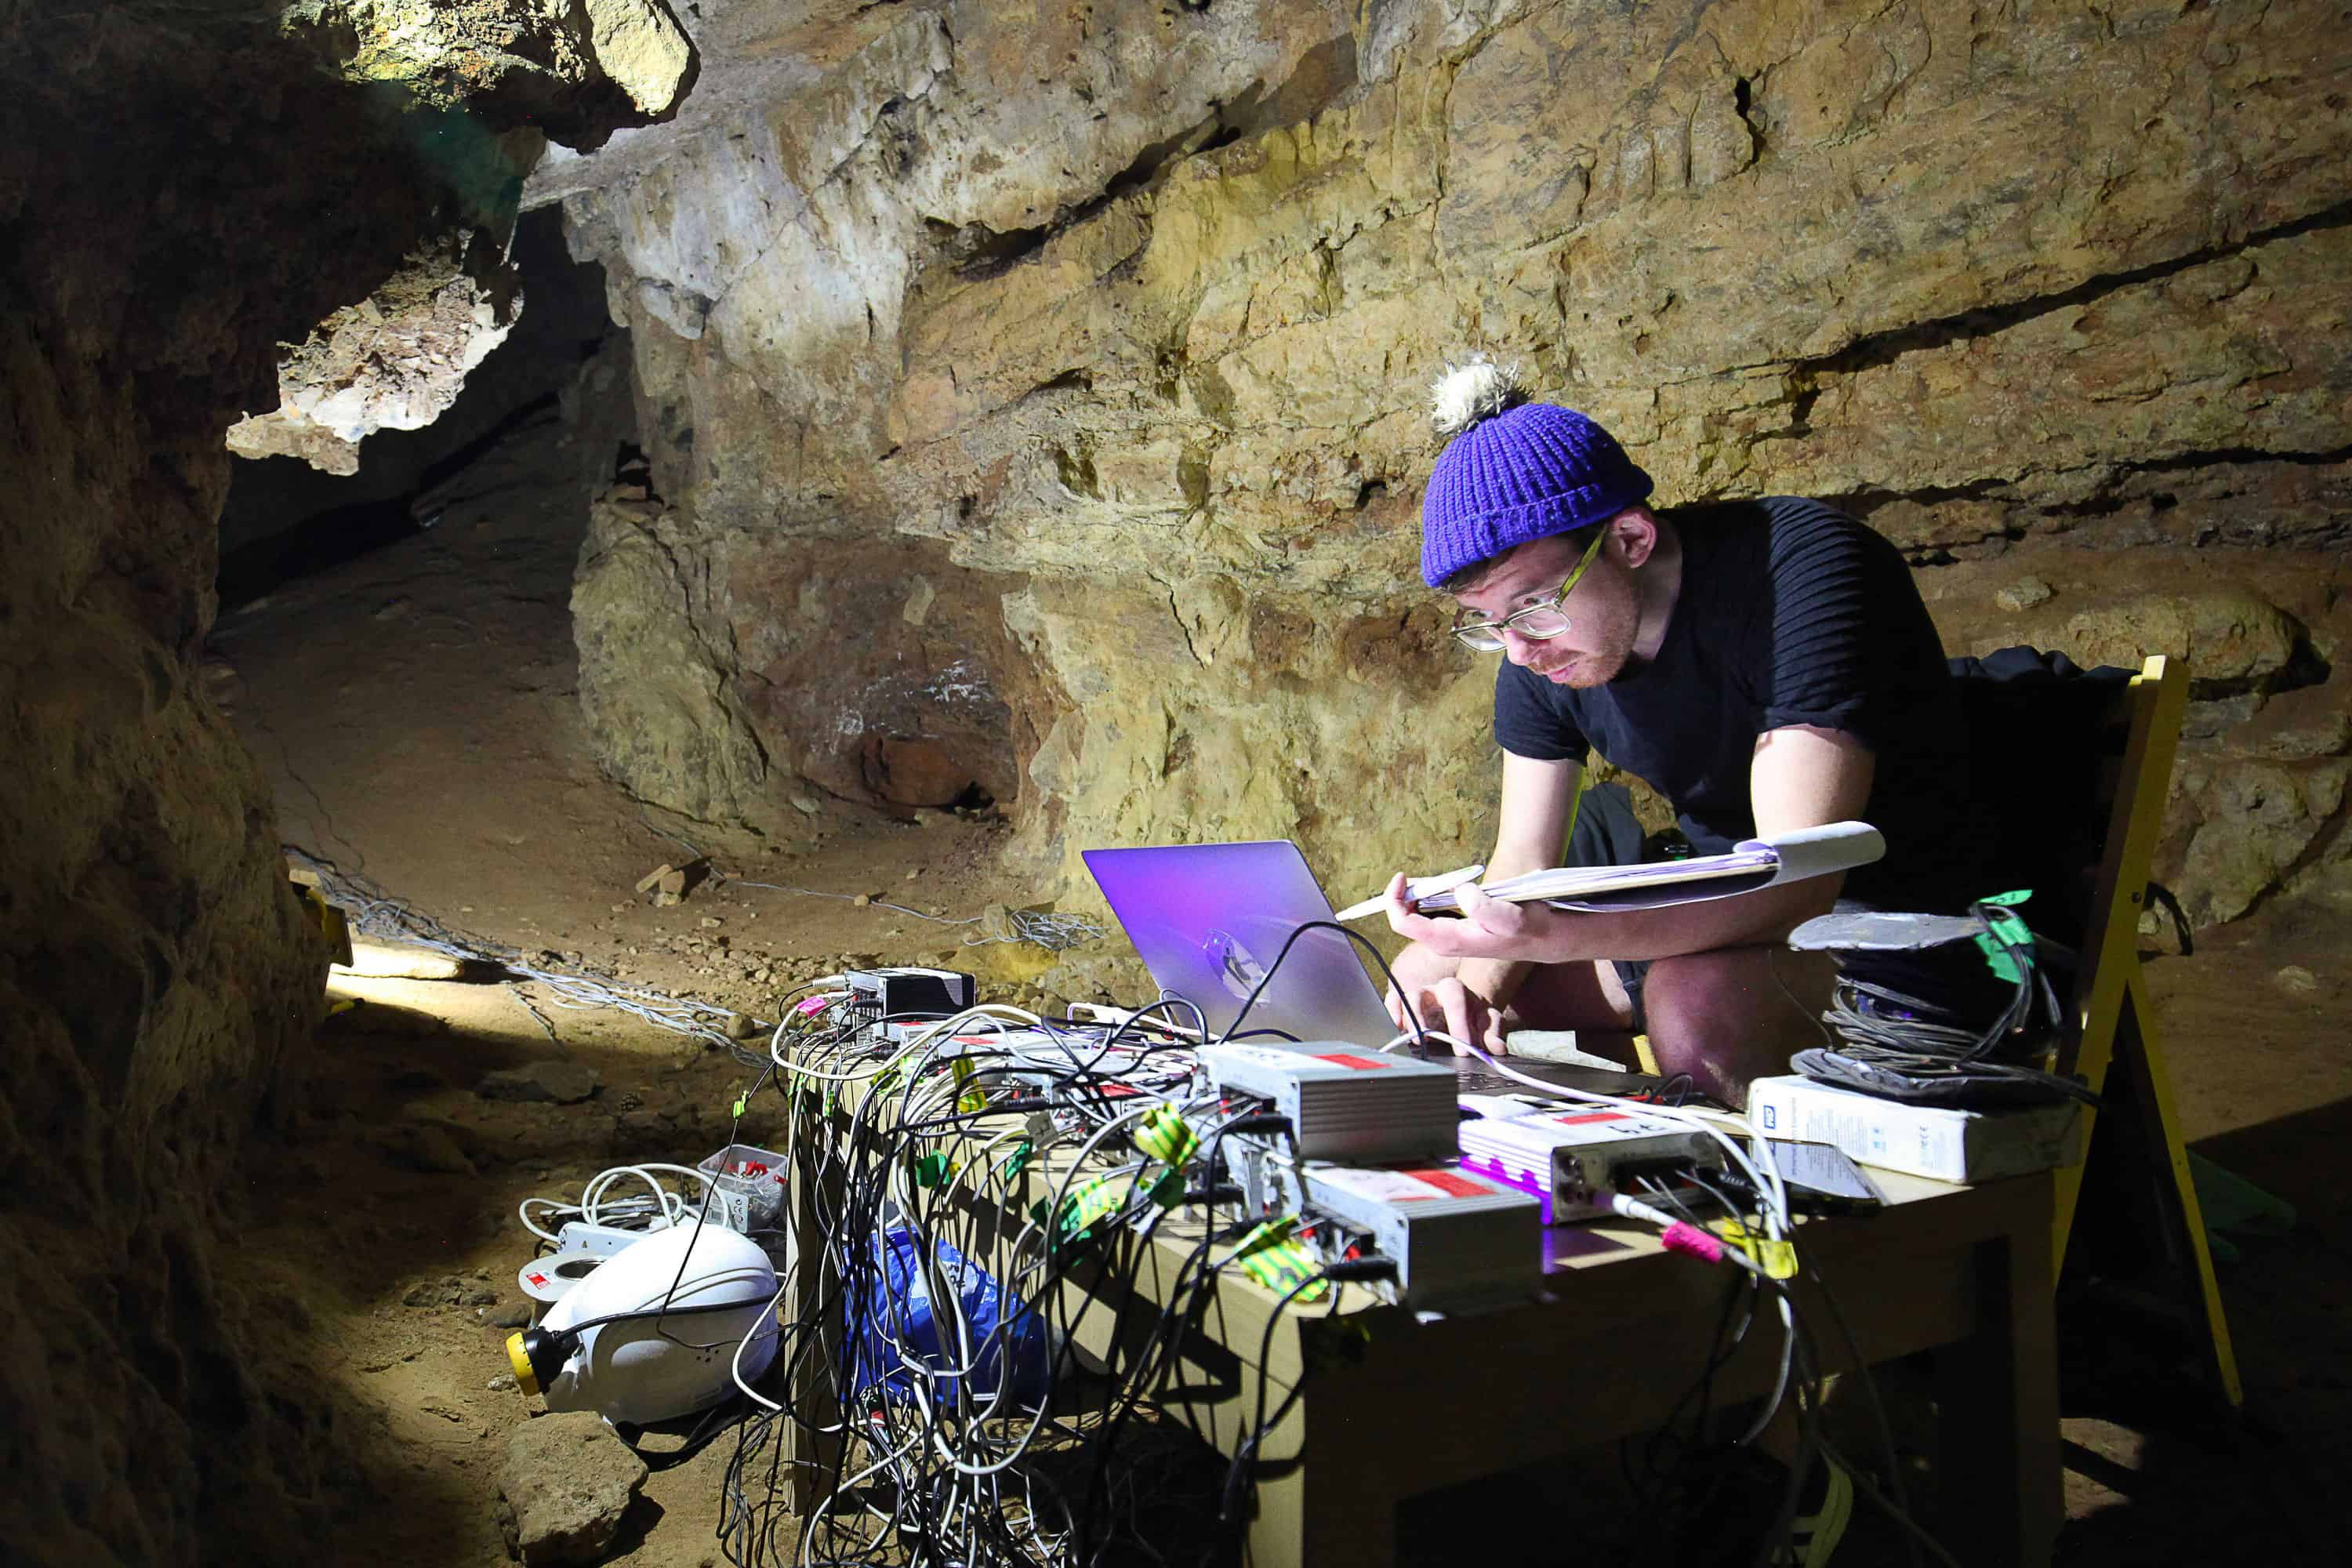 AlanJames Burn setting up Enitrely hollow aside from the dark inside Creswell Crags Caves, September 2019, Photo Marek Wolynski